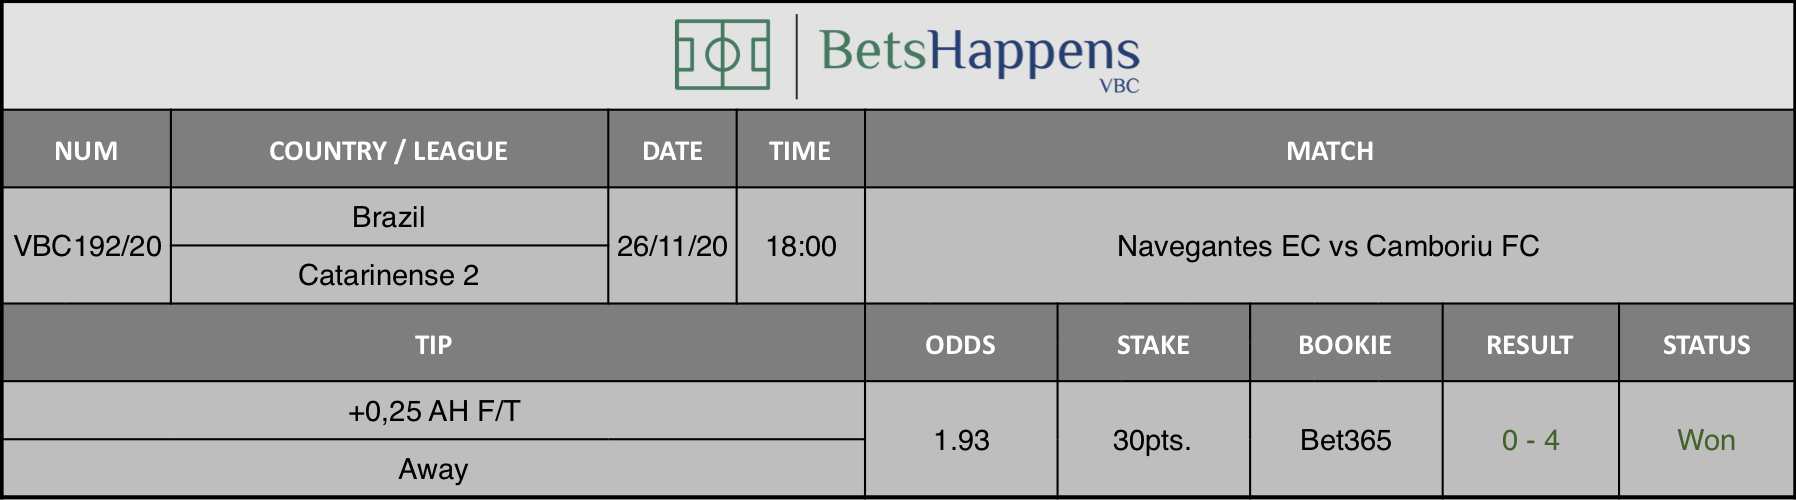 Results of our tip for the Navegantes EC vs Camboriu FC match where +0,25 AH F/T Away is recommended.